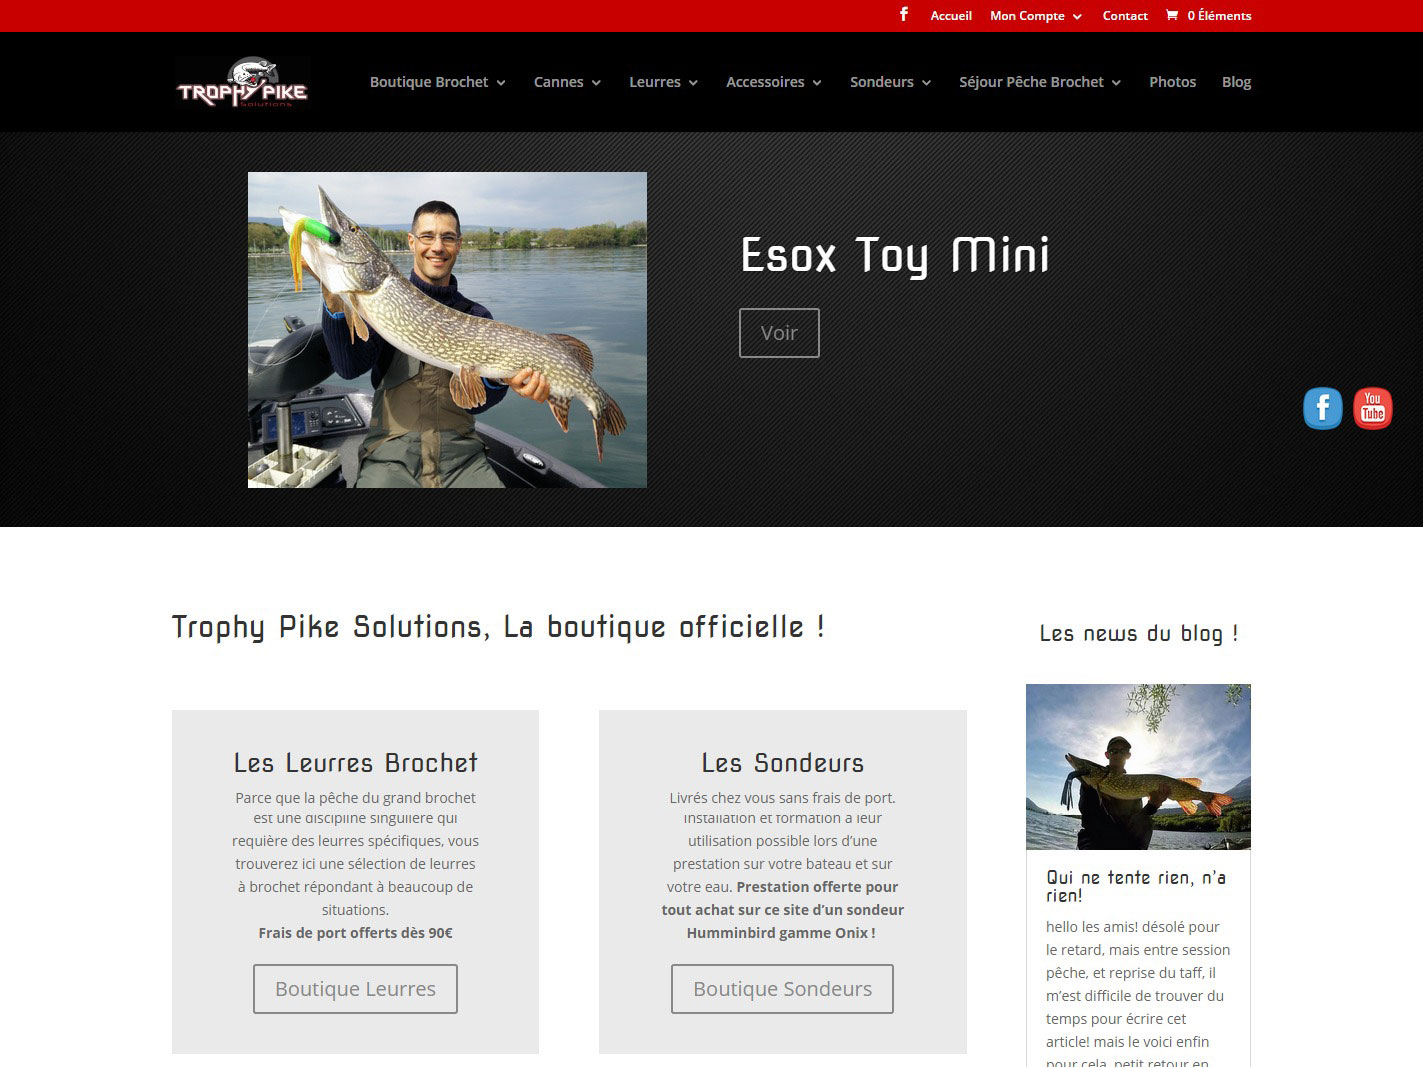 Trophy Pike Solutions